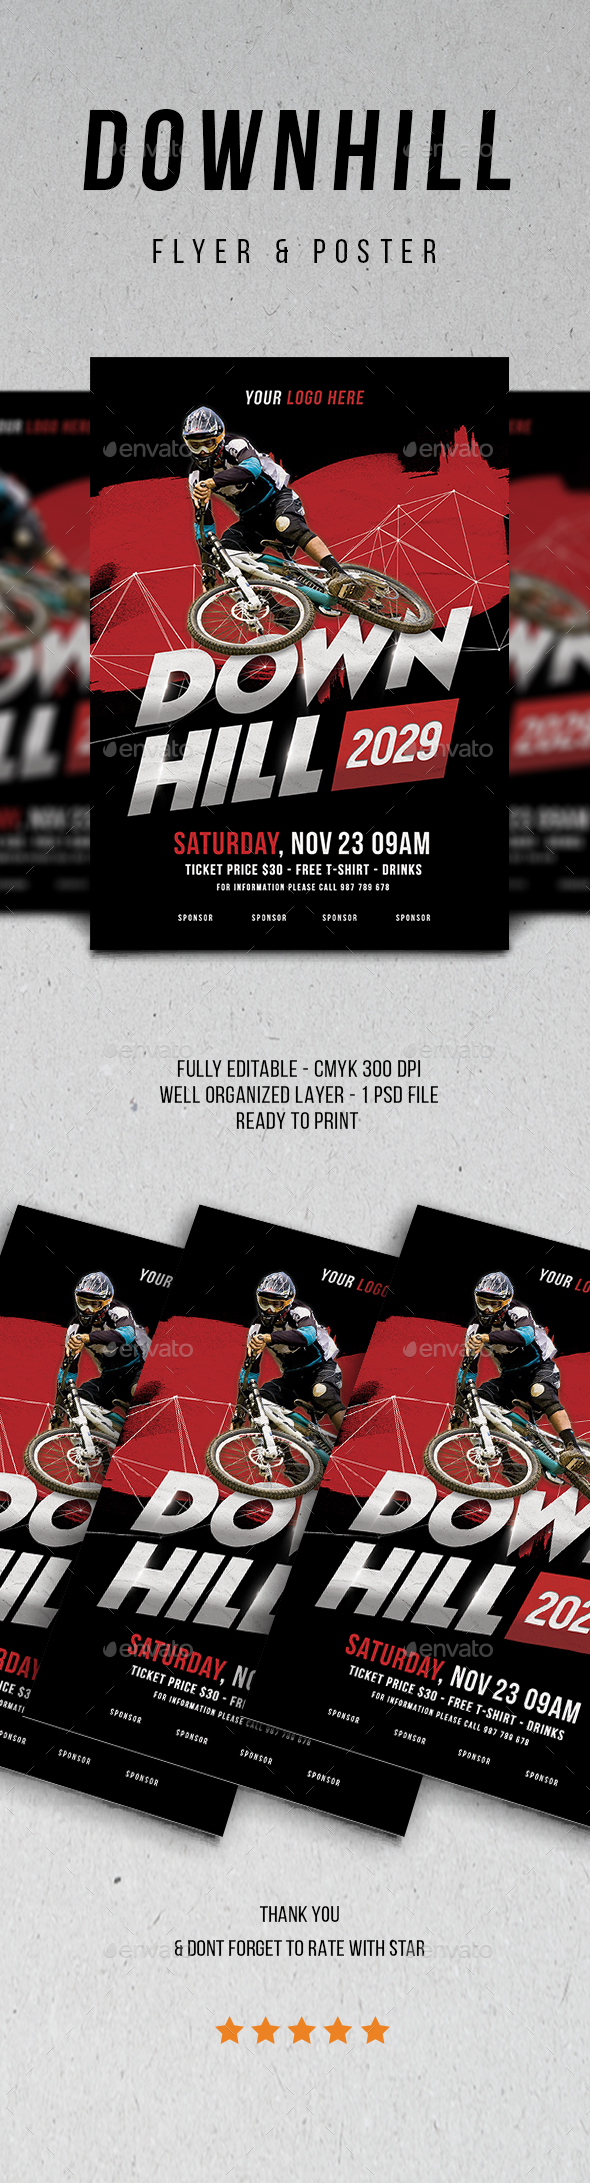 Downhill Flyer - Sports Events